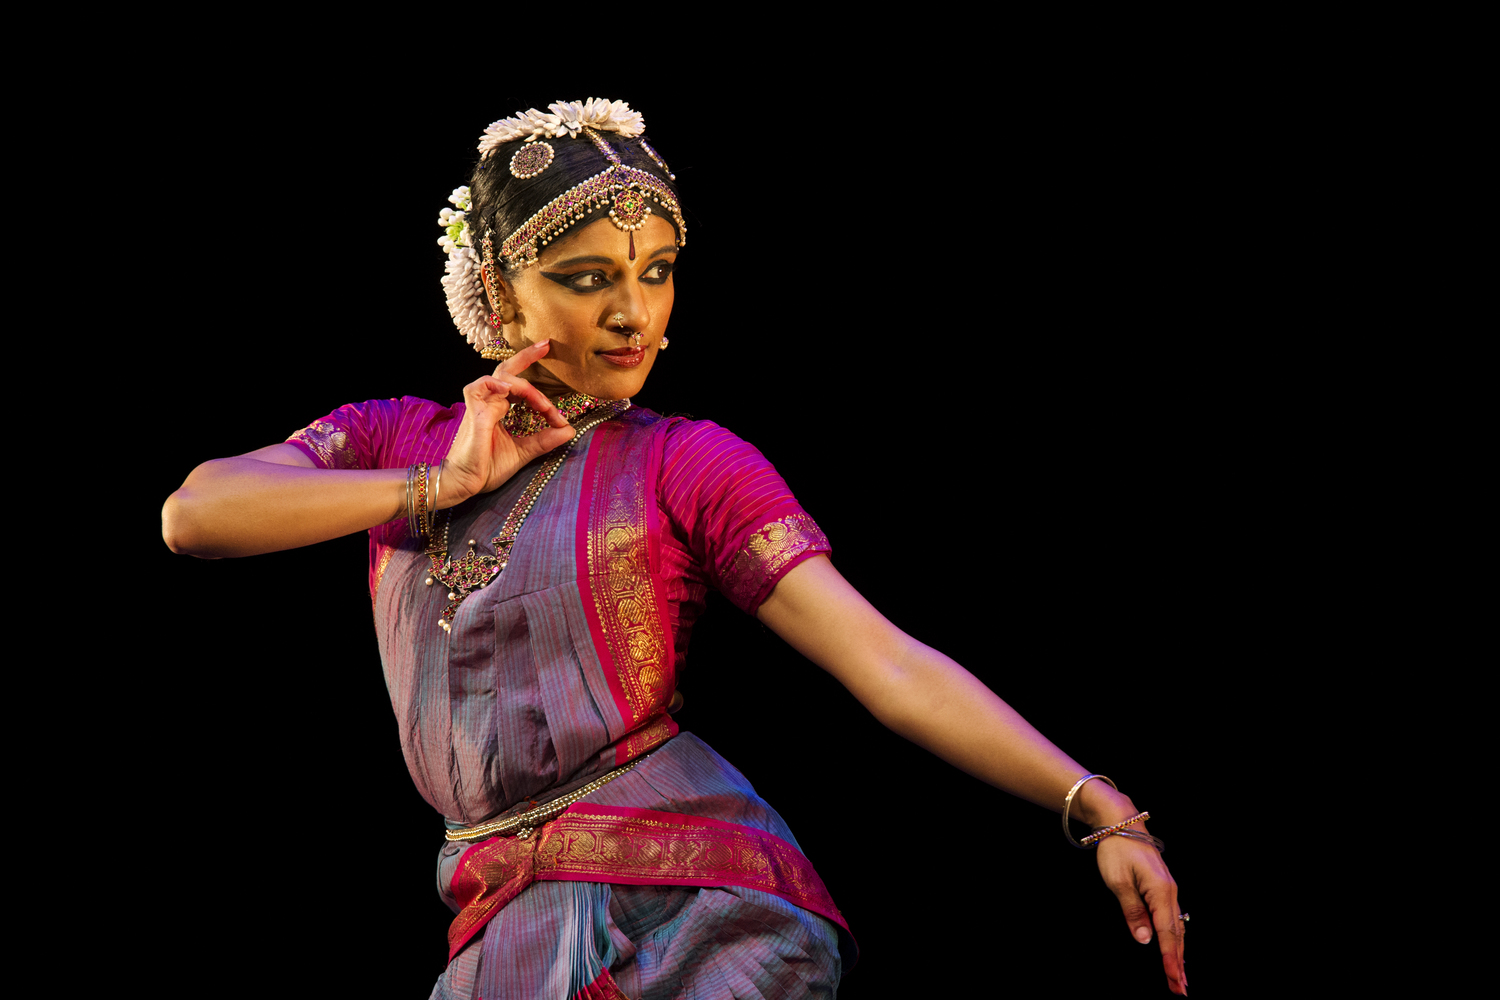 Caption: Ragamala Dance, Credit: ragamaladance.org